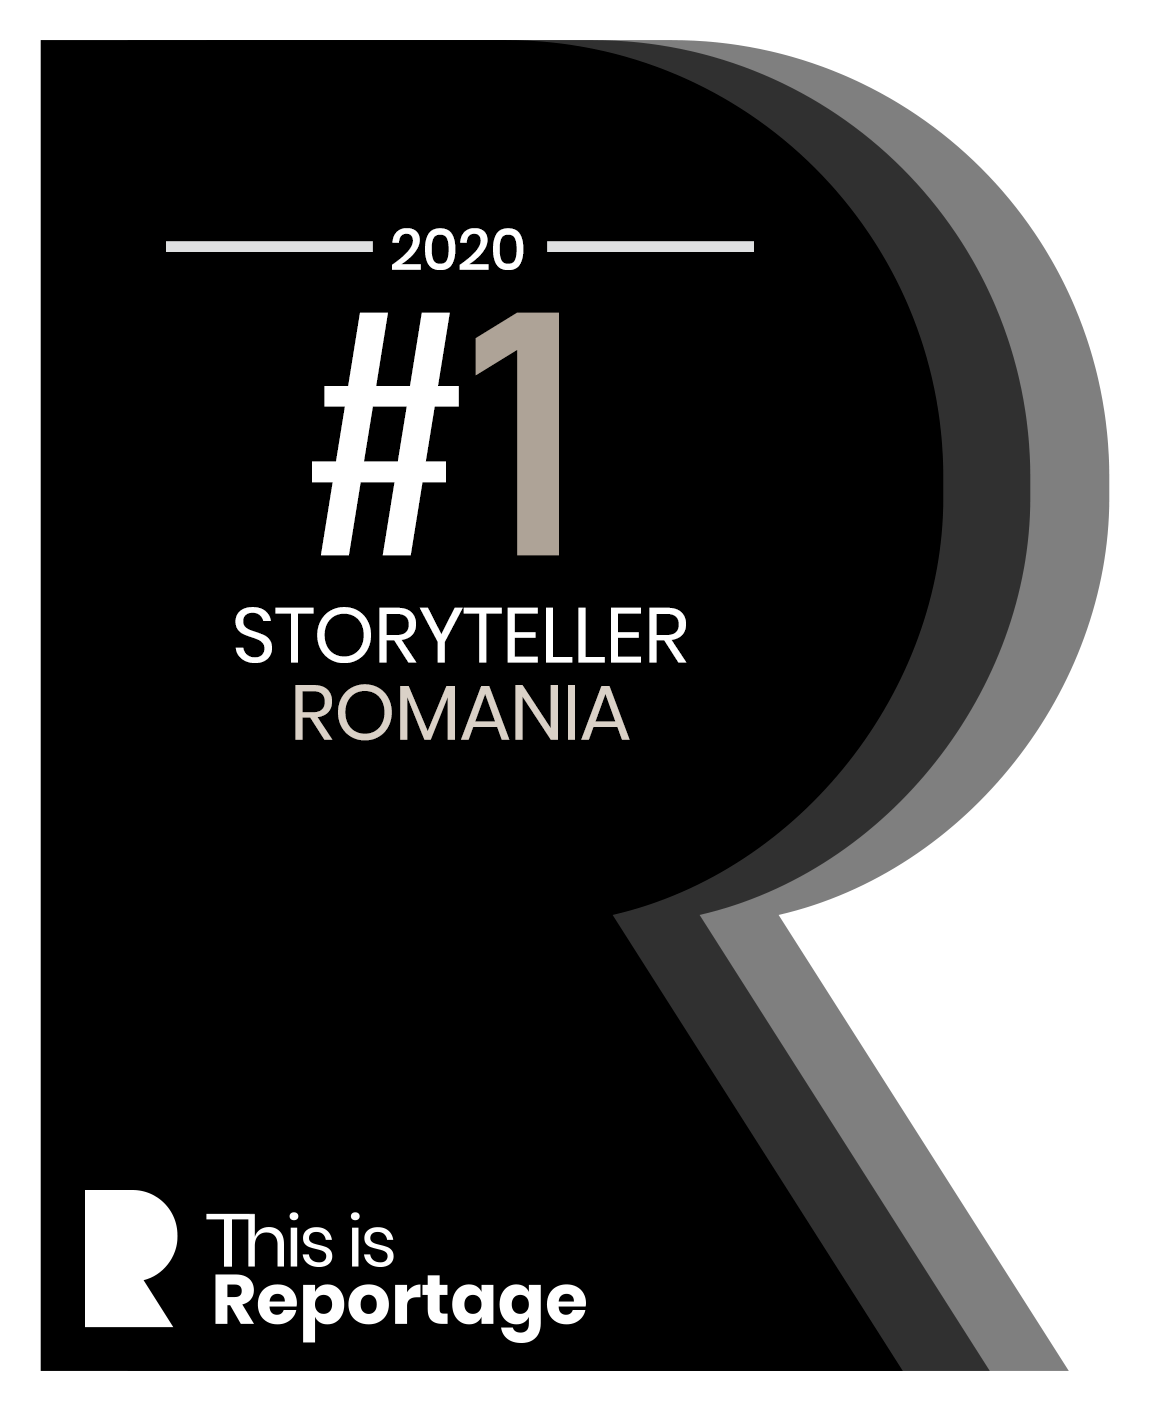 ROMANIA NO1 STORYTELLER 2020